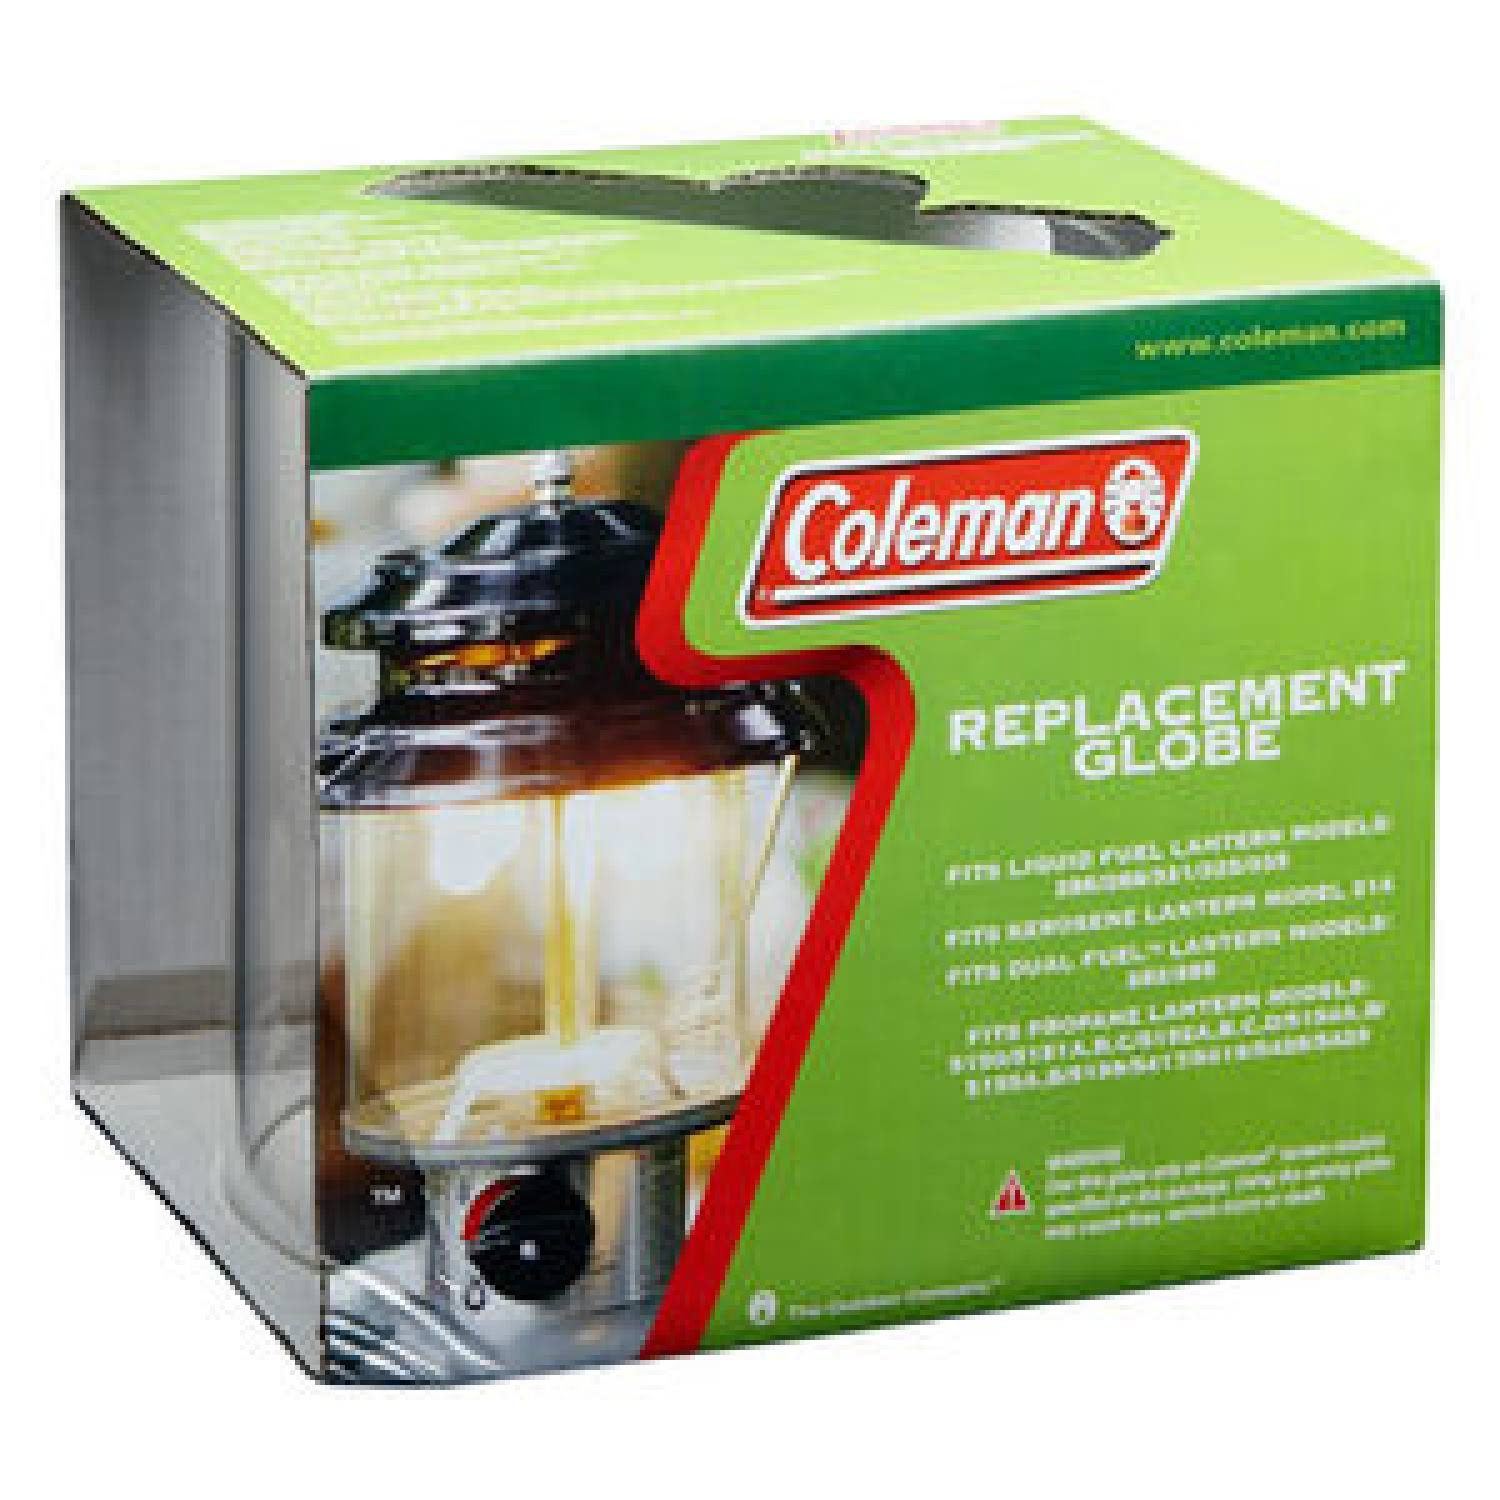 Coleman Lantern Replacement Globe